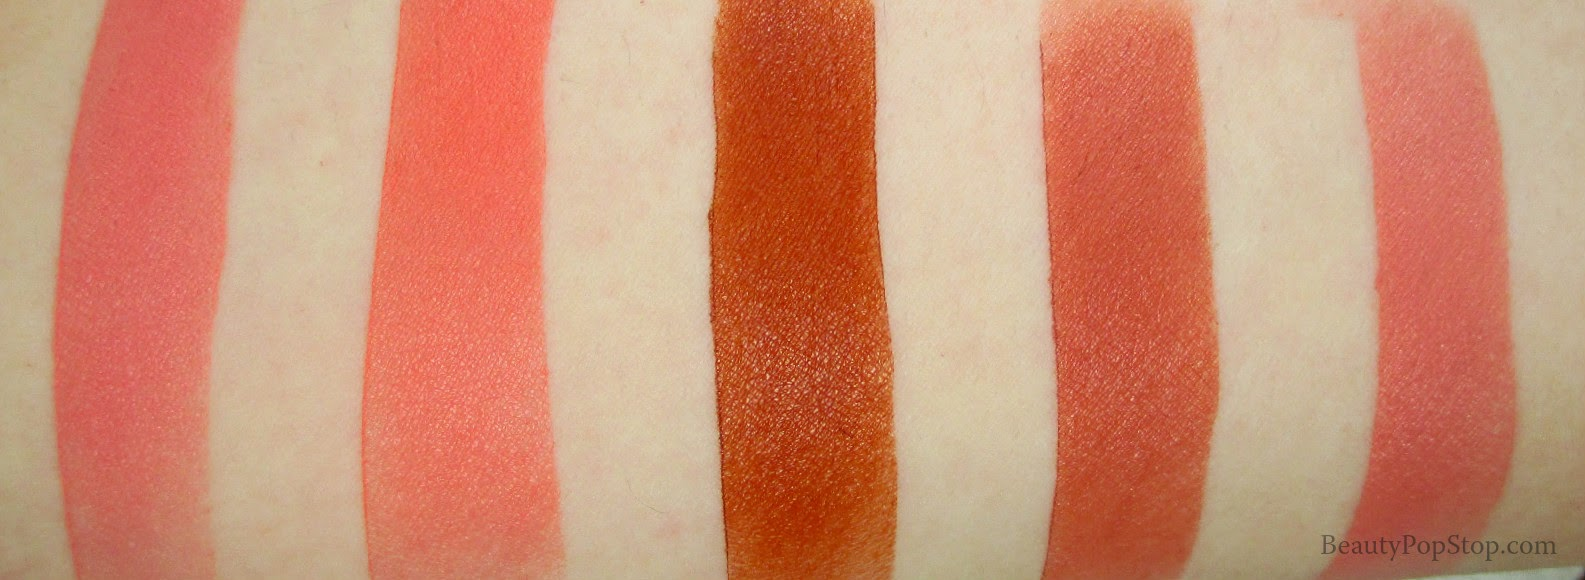 maqpro lip and rouge palette pp18 swatches